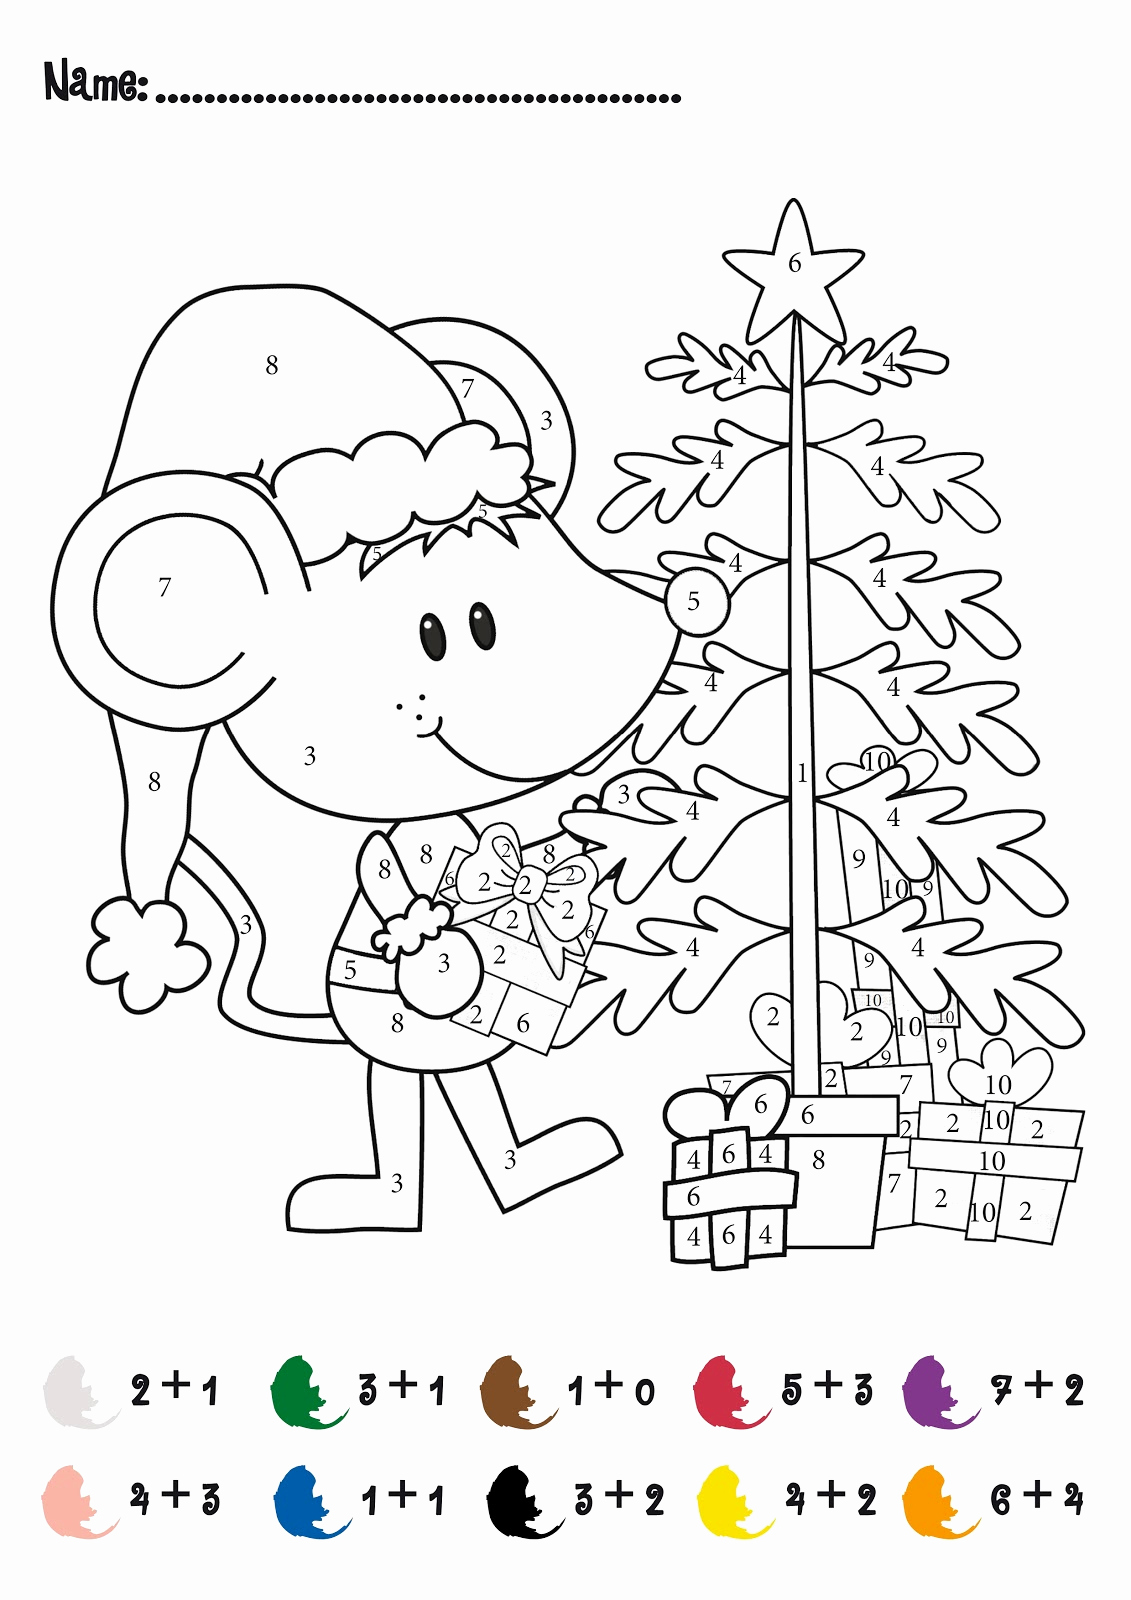 Addition Coloring Worksheets for Kindergarten Fresh Color by Number Addition Best Coloring Pages for Kids